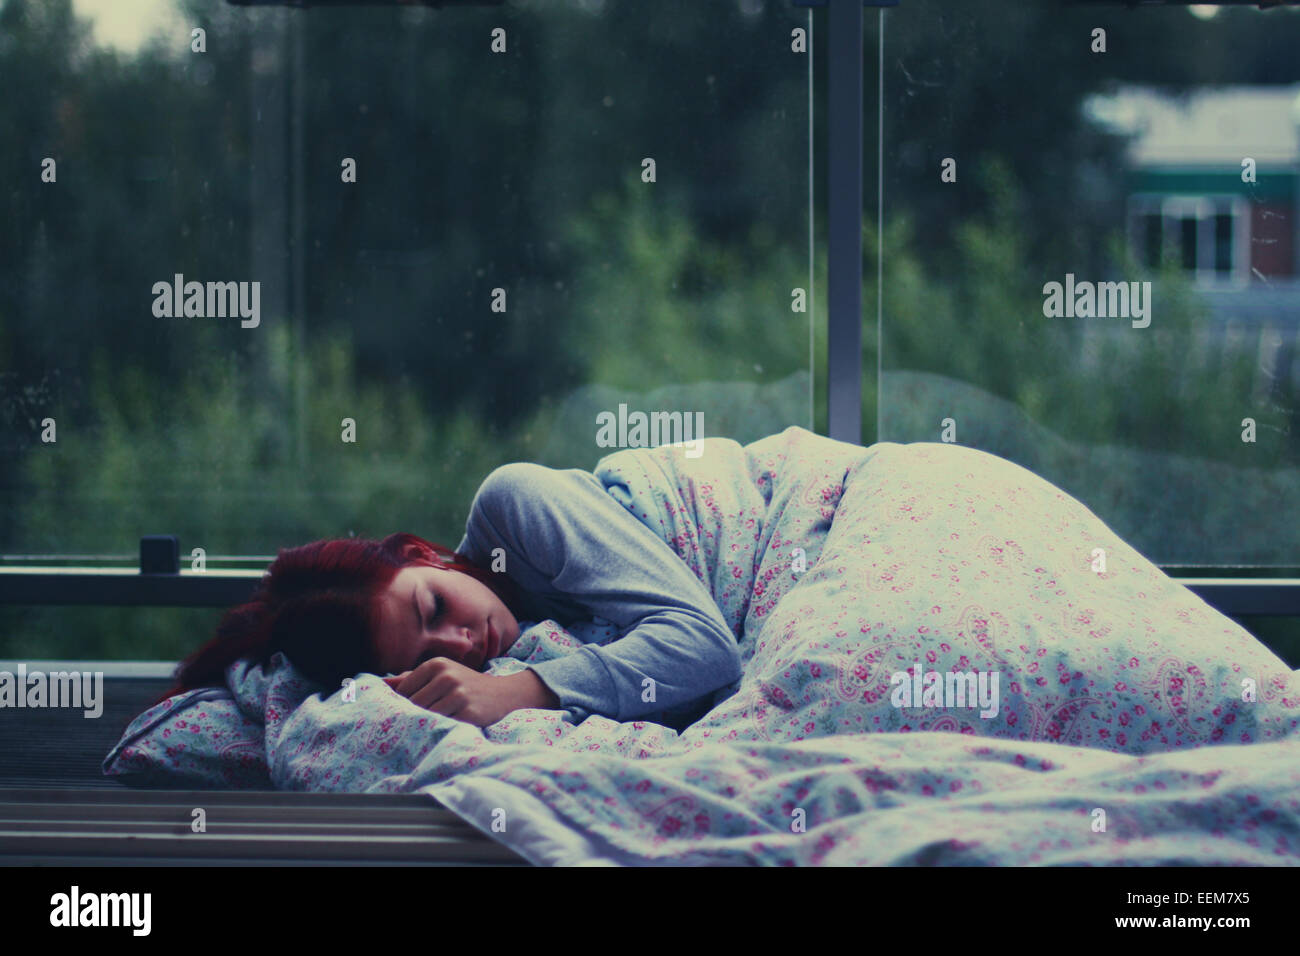 Young woman sleeping at bus shelter - Stock Image